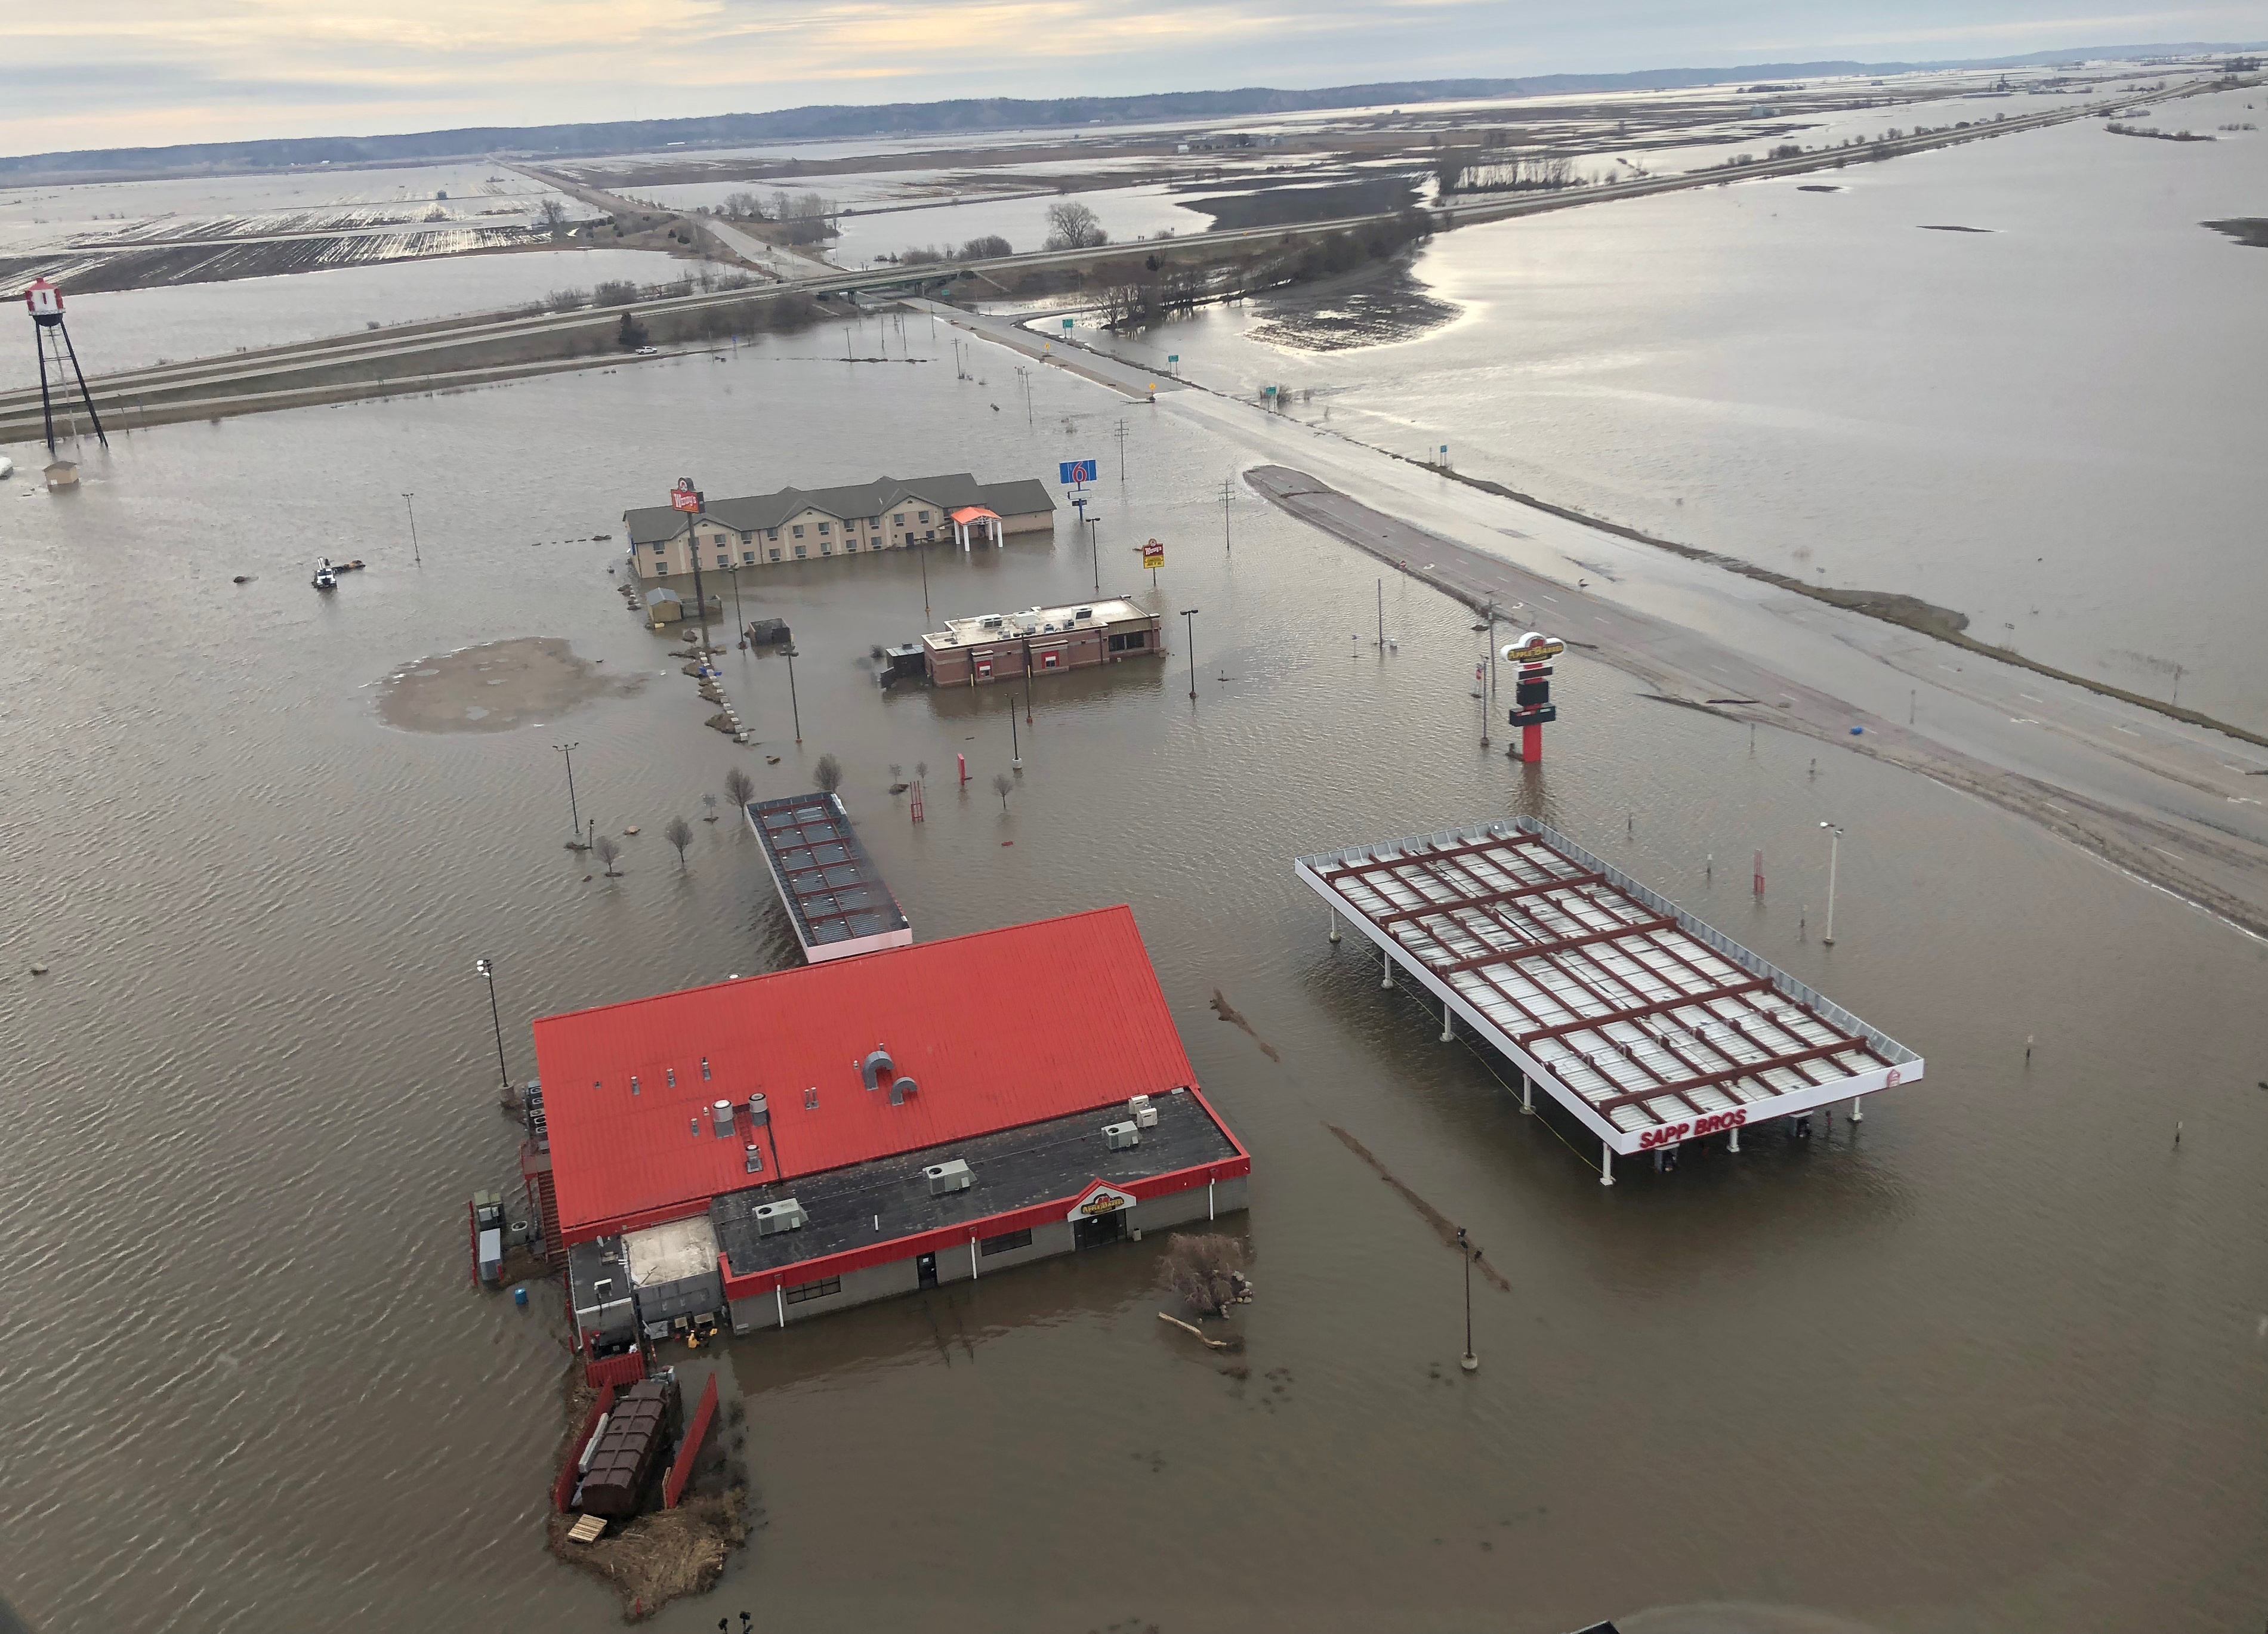 FILE PHOTO: A motel, restaurant and travel stop are shown surrounded by flood waters in this aerial photo in Percival, Iowa, U.S., March 29, 2019. REUTERS/Tom Polansek/File Photo